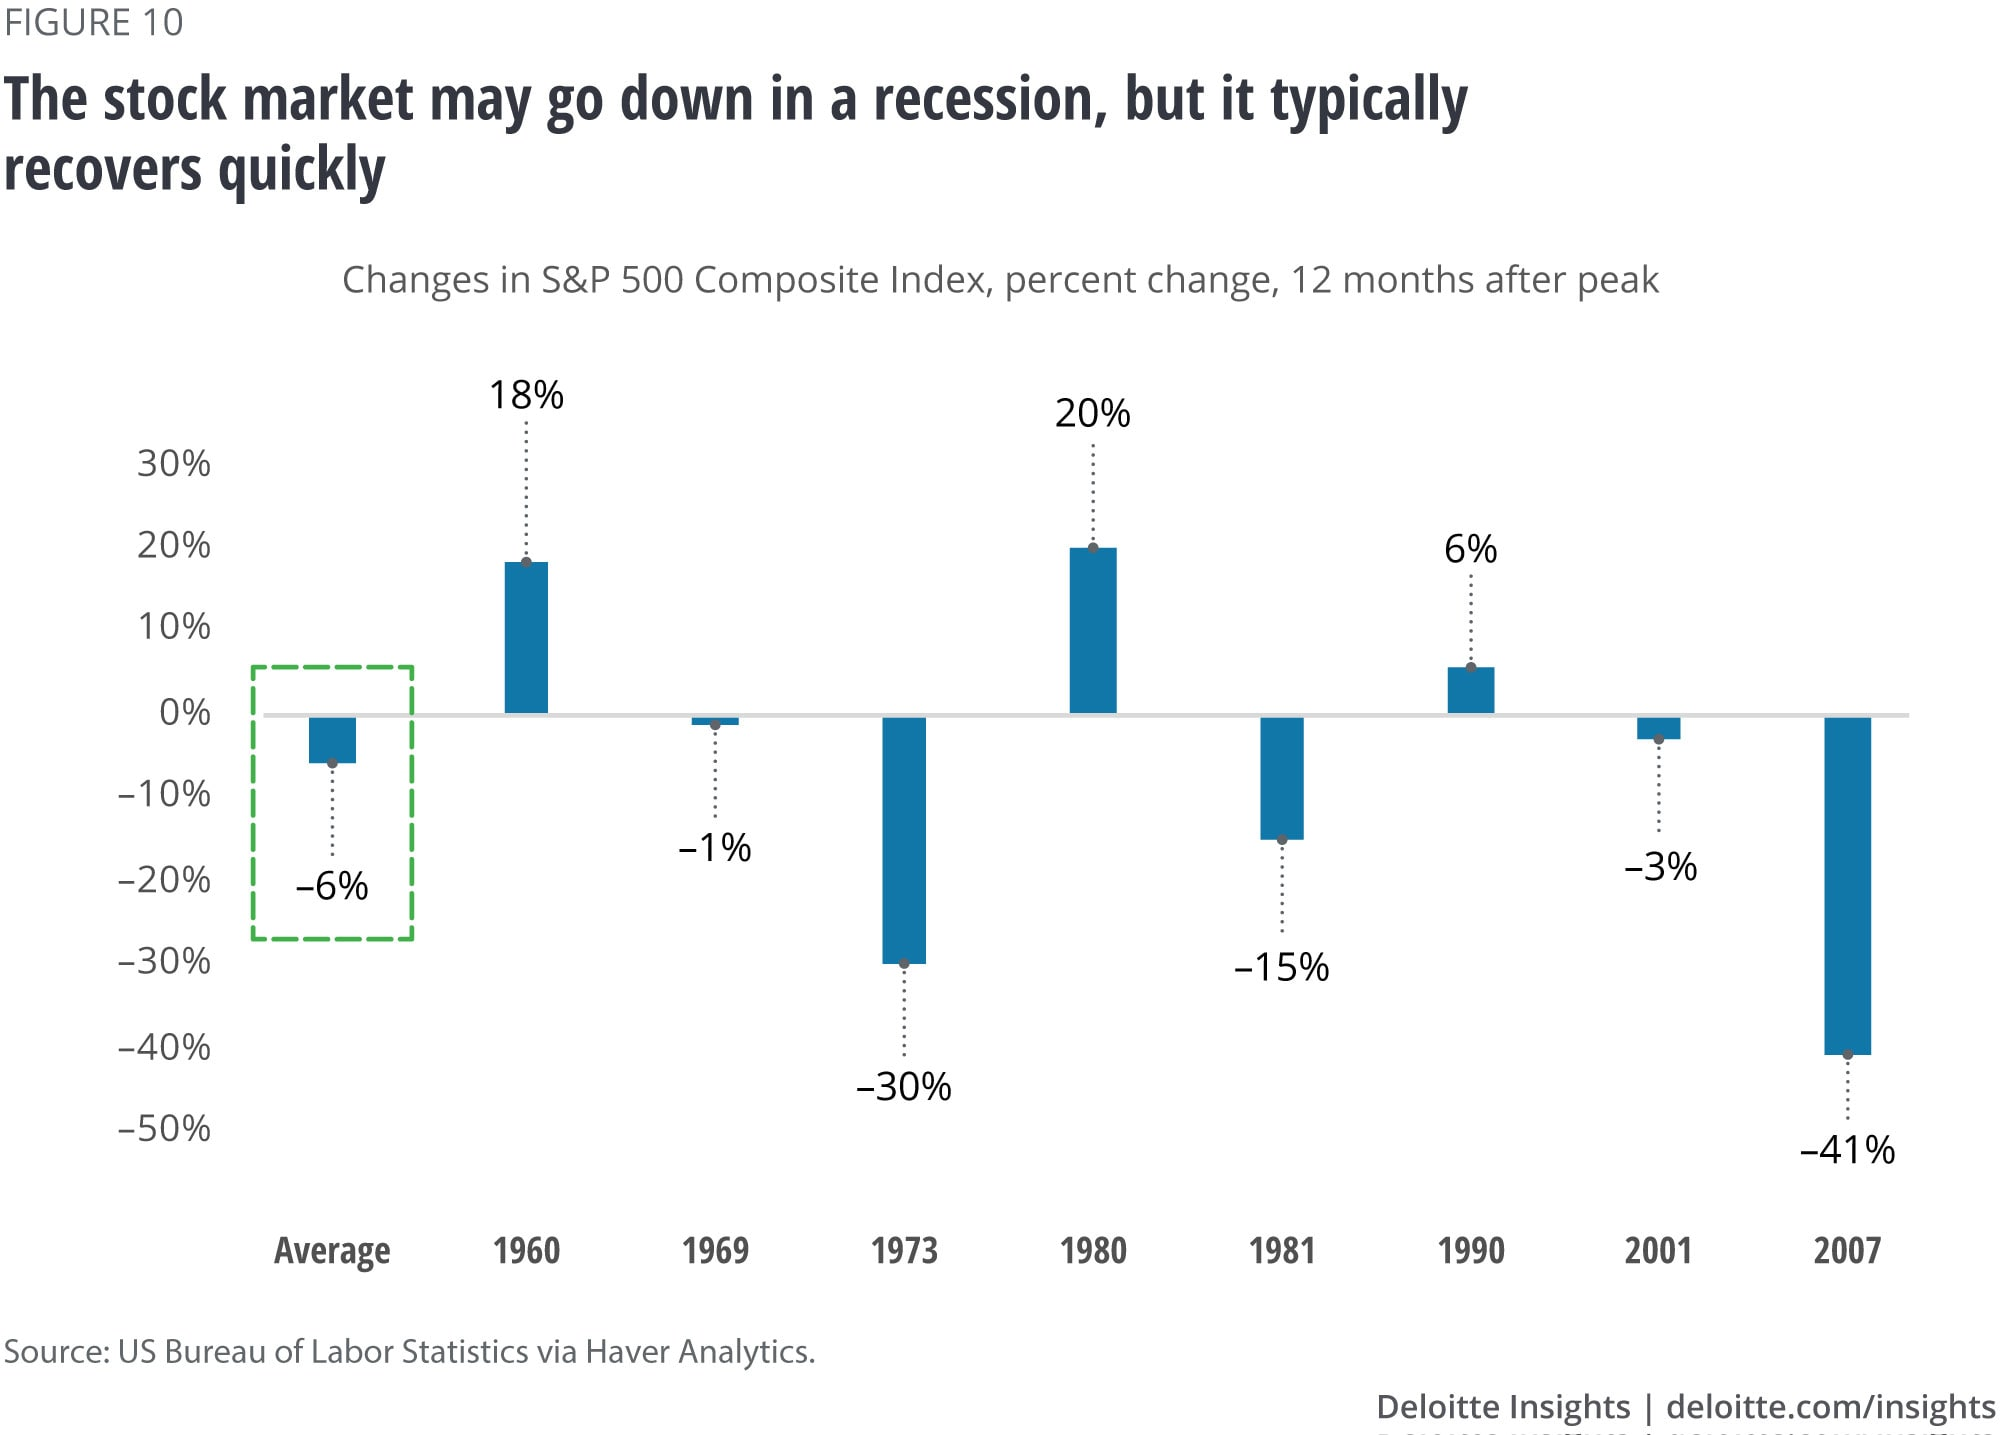 The stock market may go down in a recession, but it typically recovers quickly